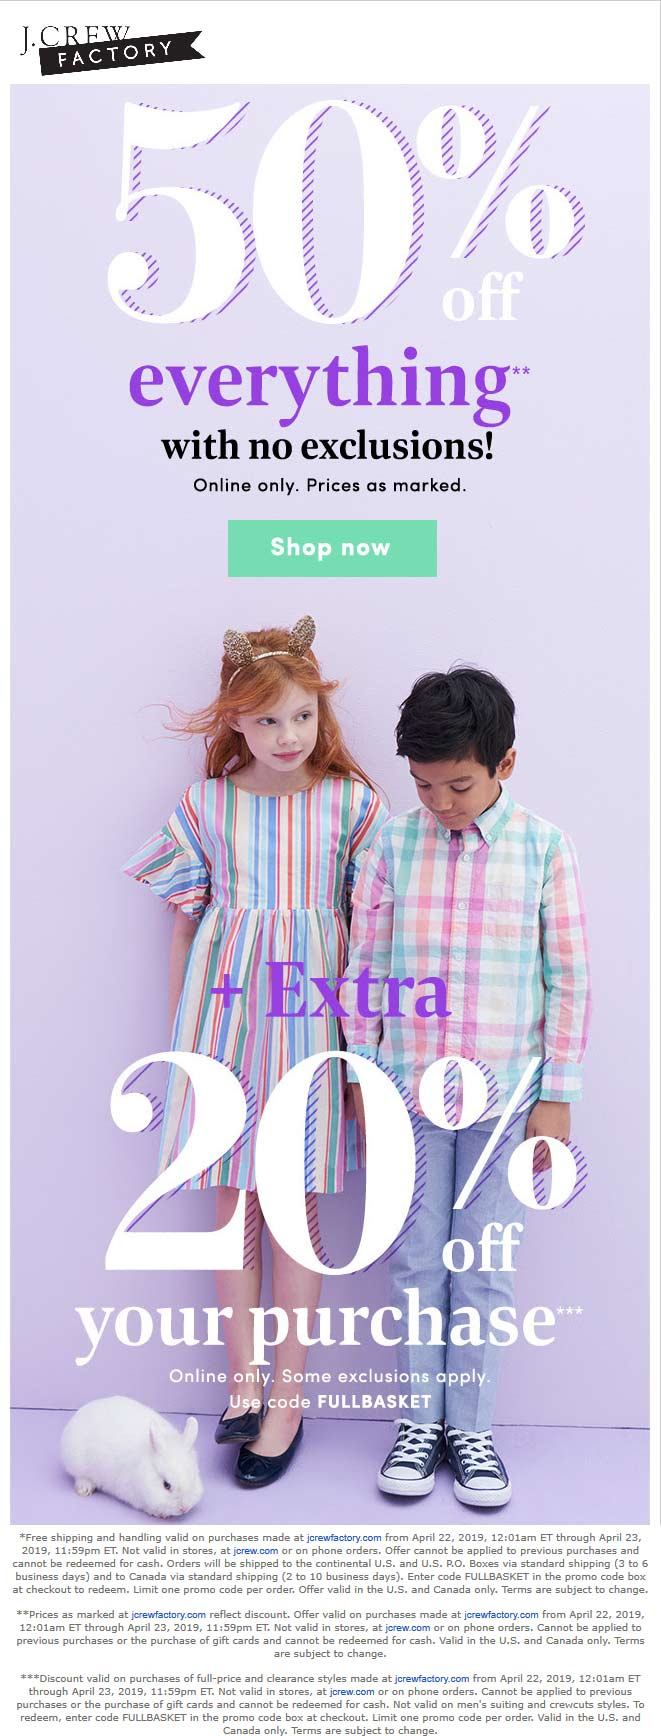 J.Crew Factory Coupon November 2019 70% off everything online at J.Crew Factory via promo code FULLBASKET